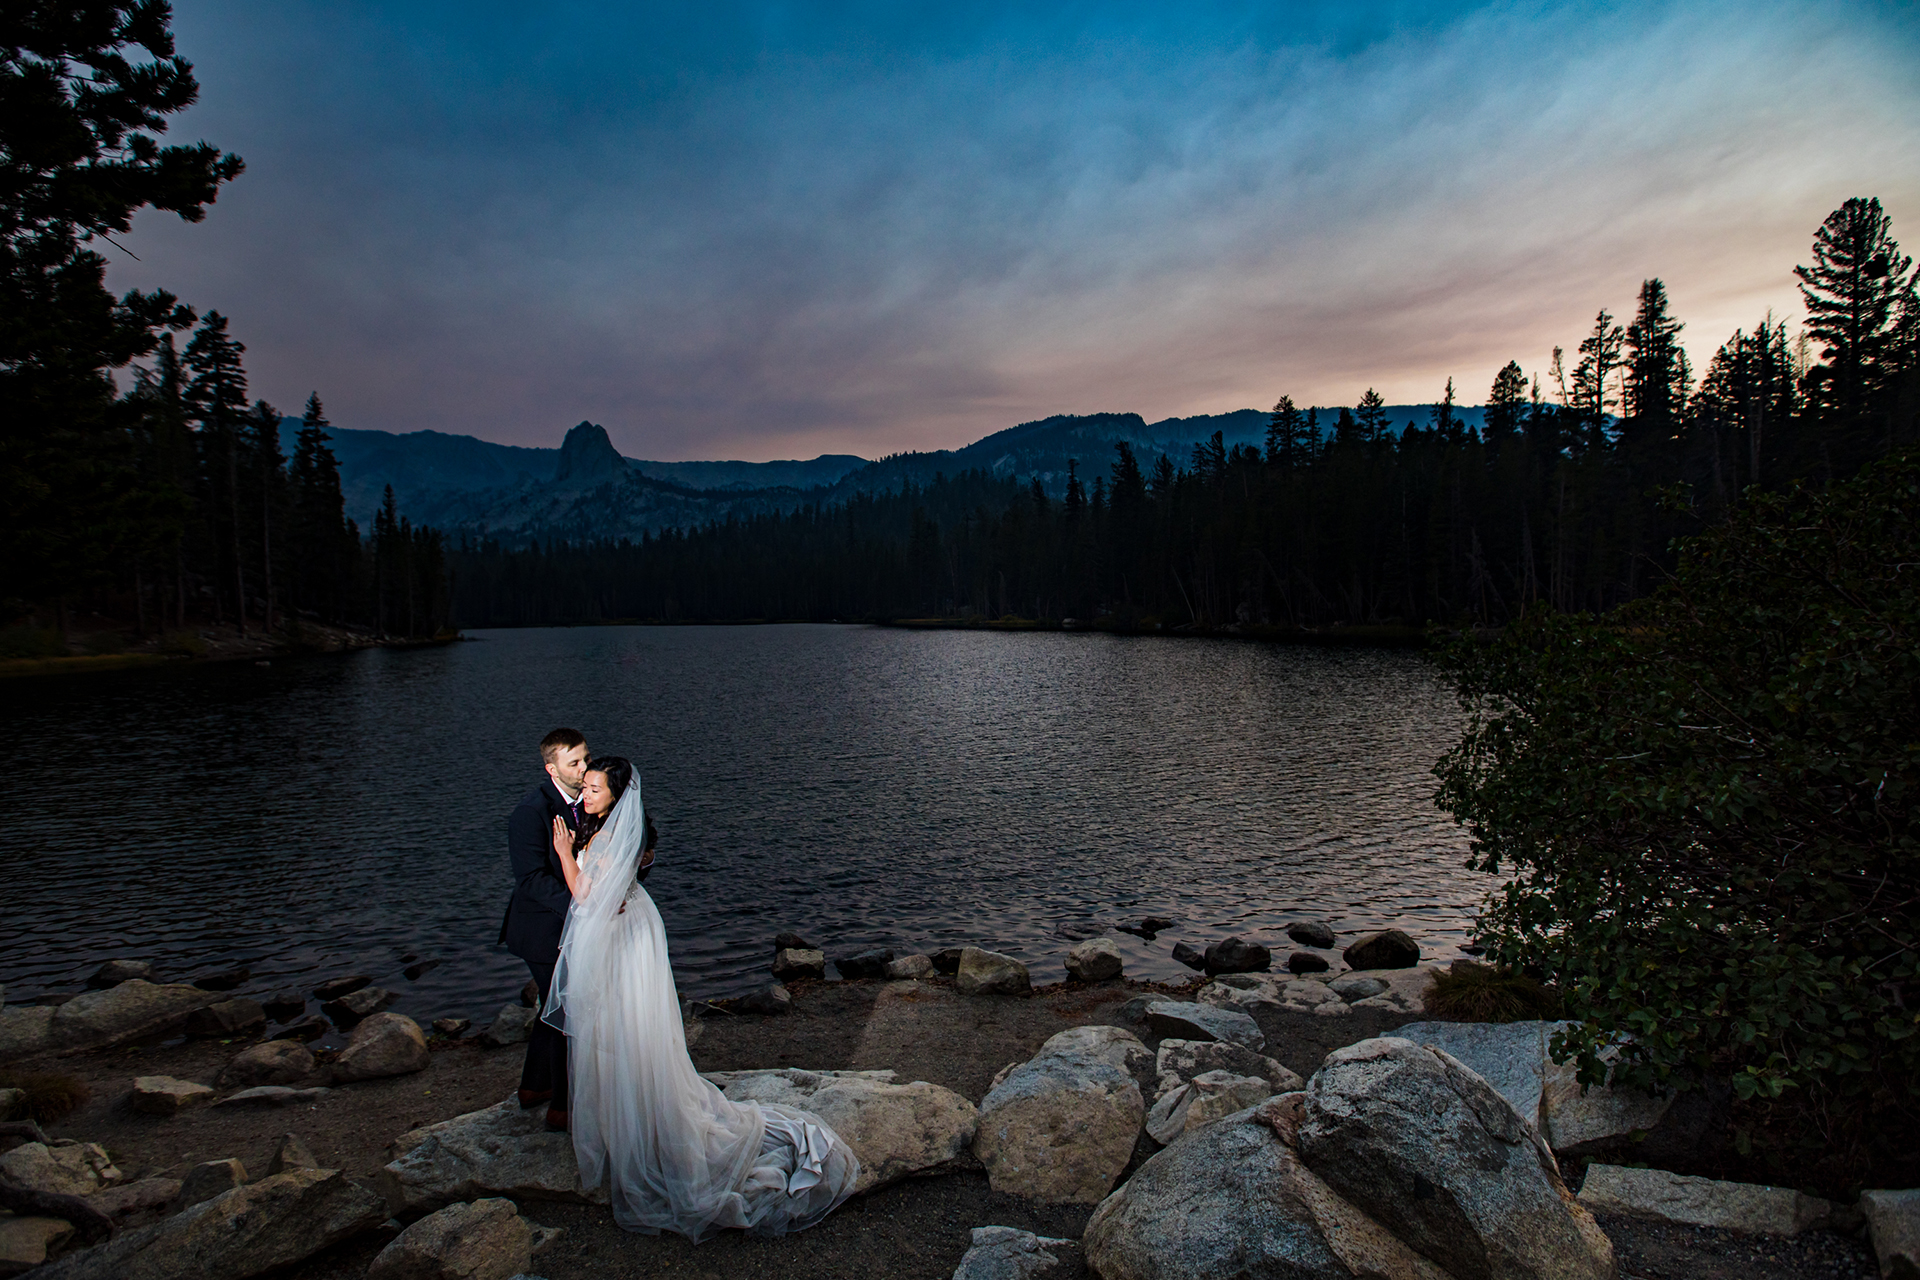 Mammoth Lakes Airbnb Vacation Home Wedding Pix | At sunset, the bride and groom snuck away for an intimate and romantic portrait session